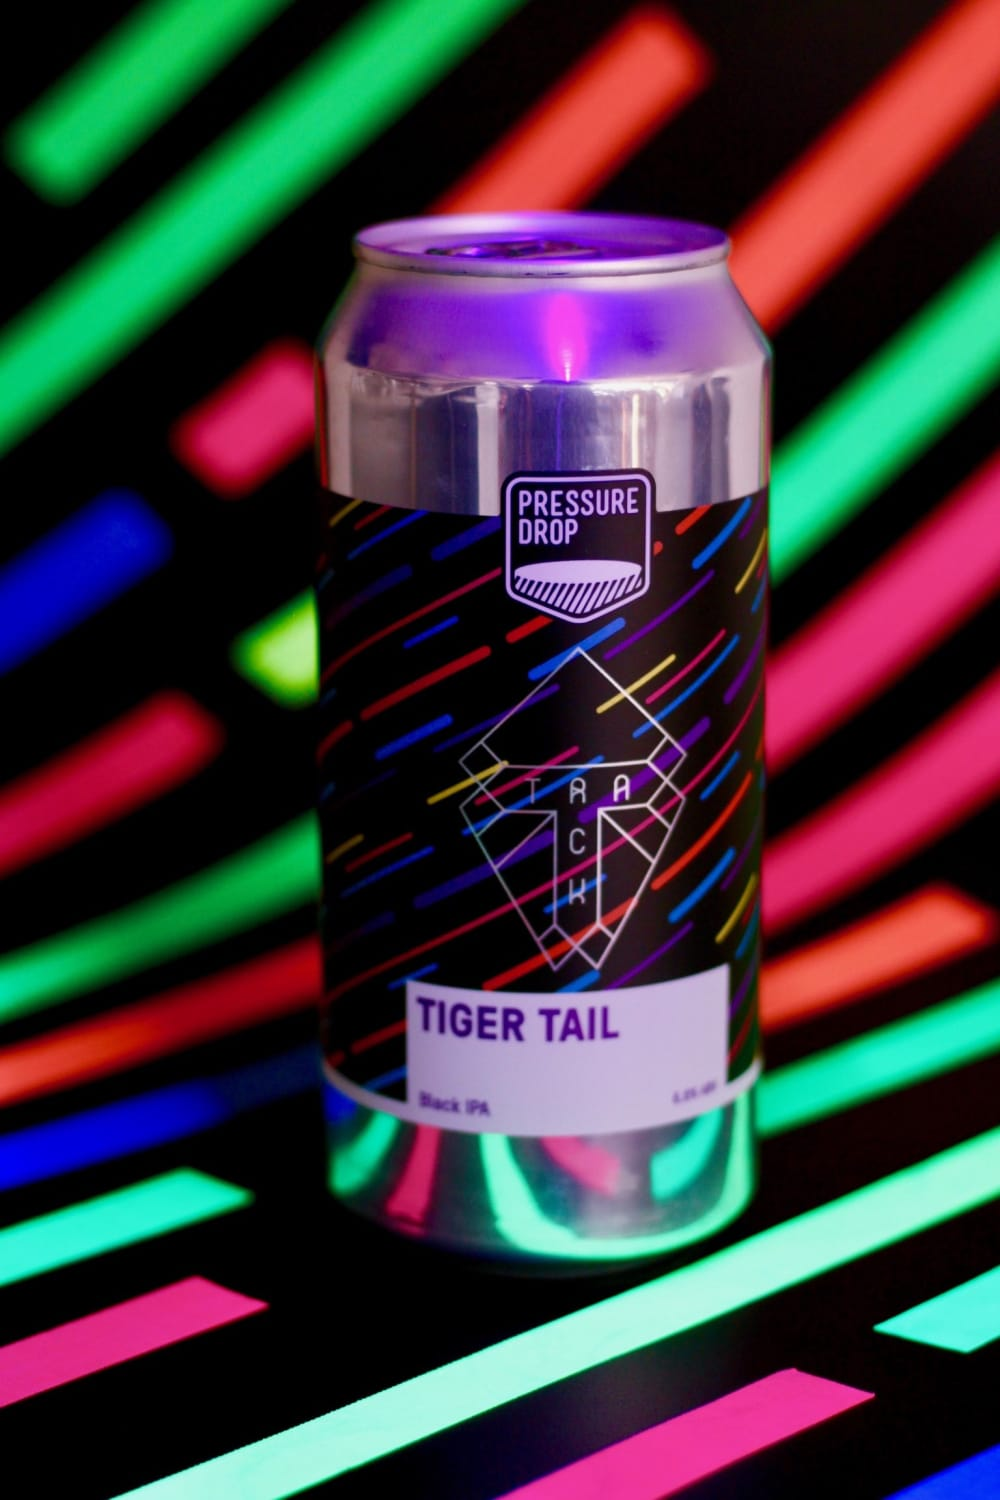 Tiger Tail 6.8% Black IPA